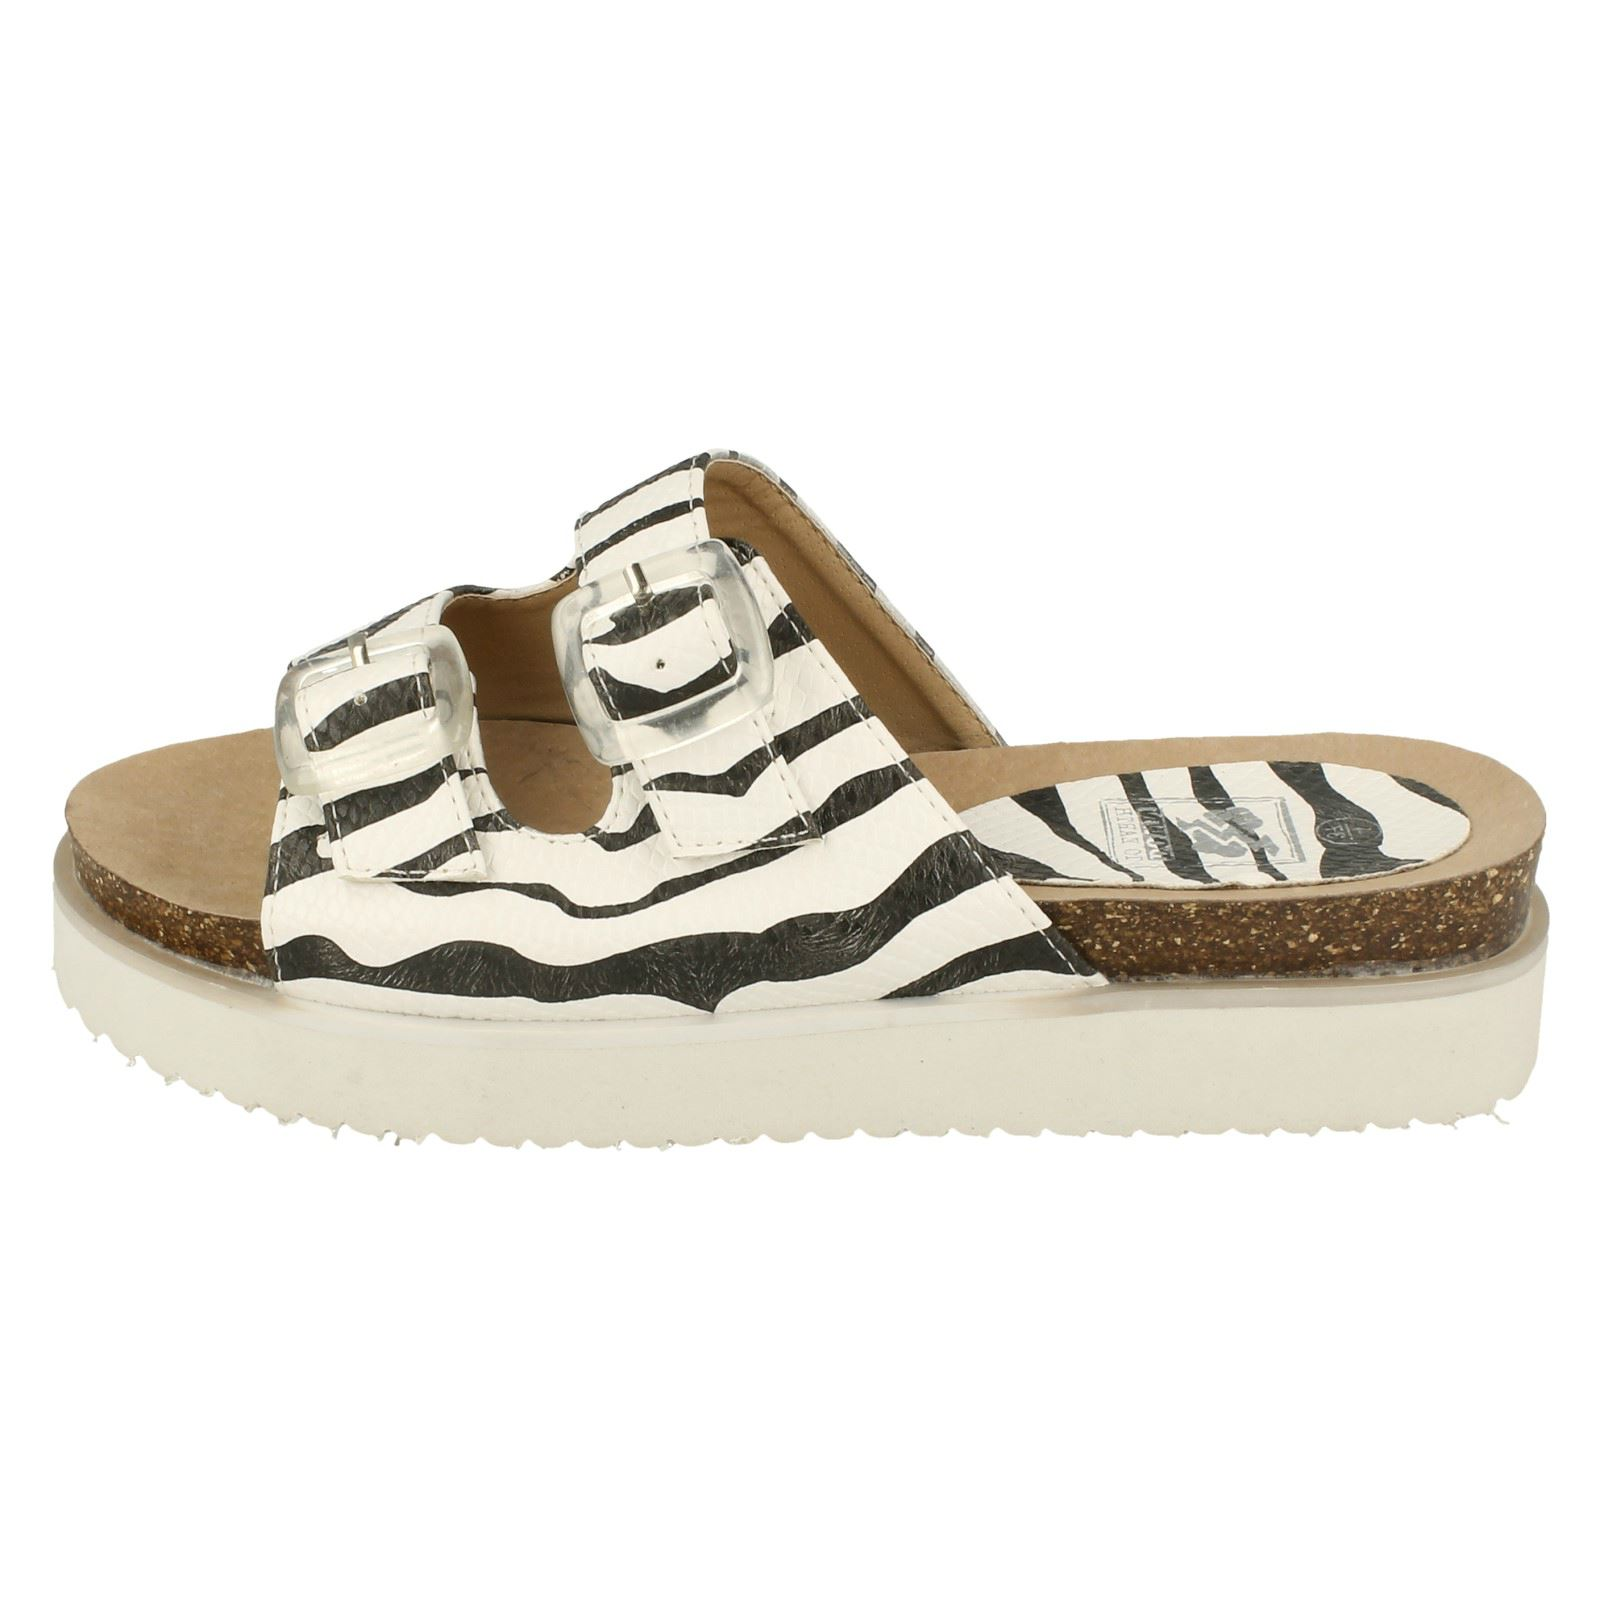 Down To Earth Double Buckle Slip On Ladies Mule Sandals